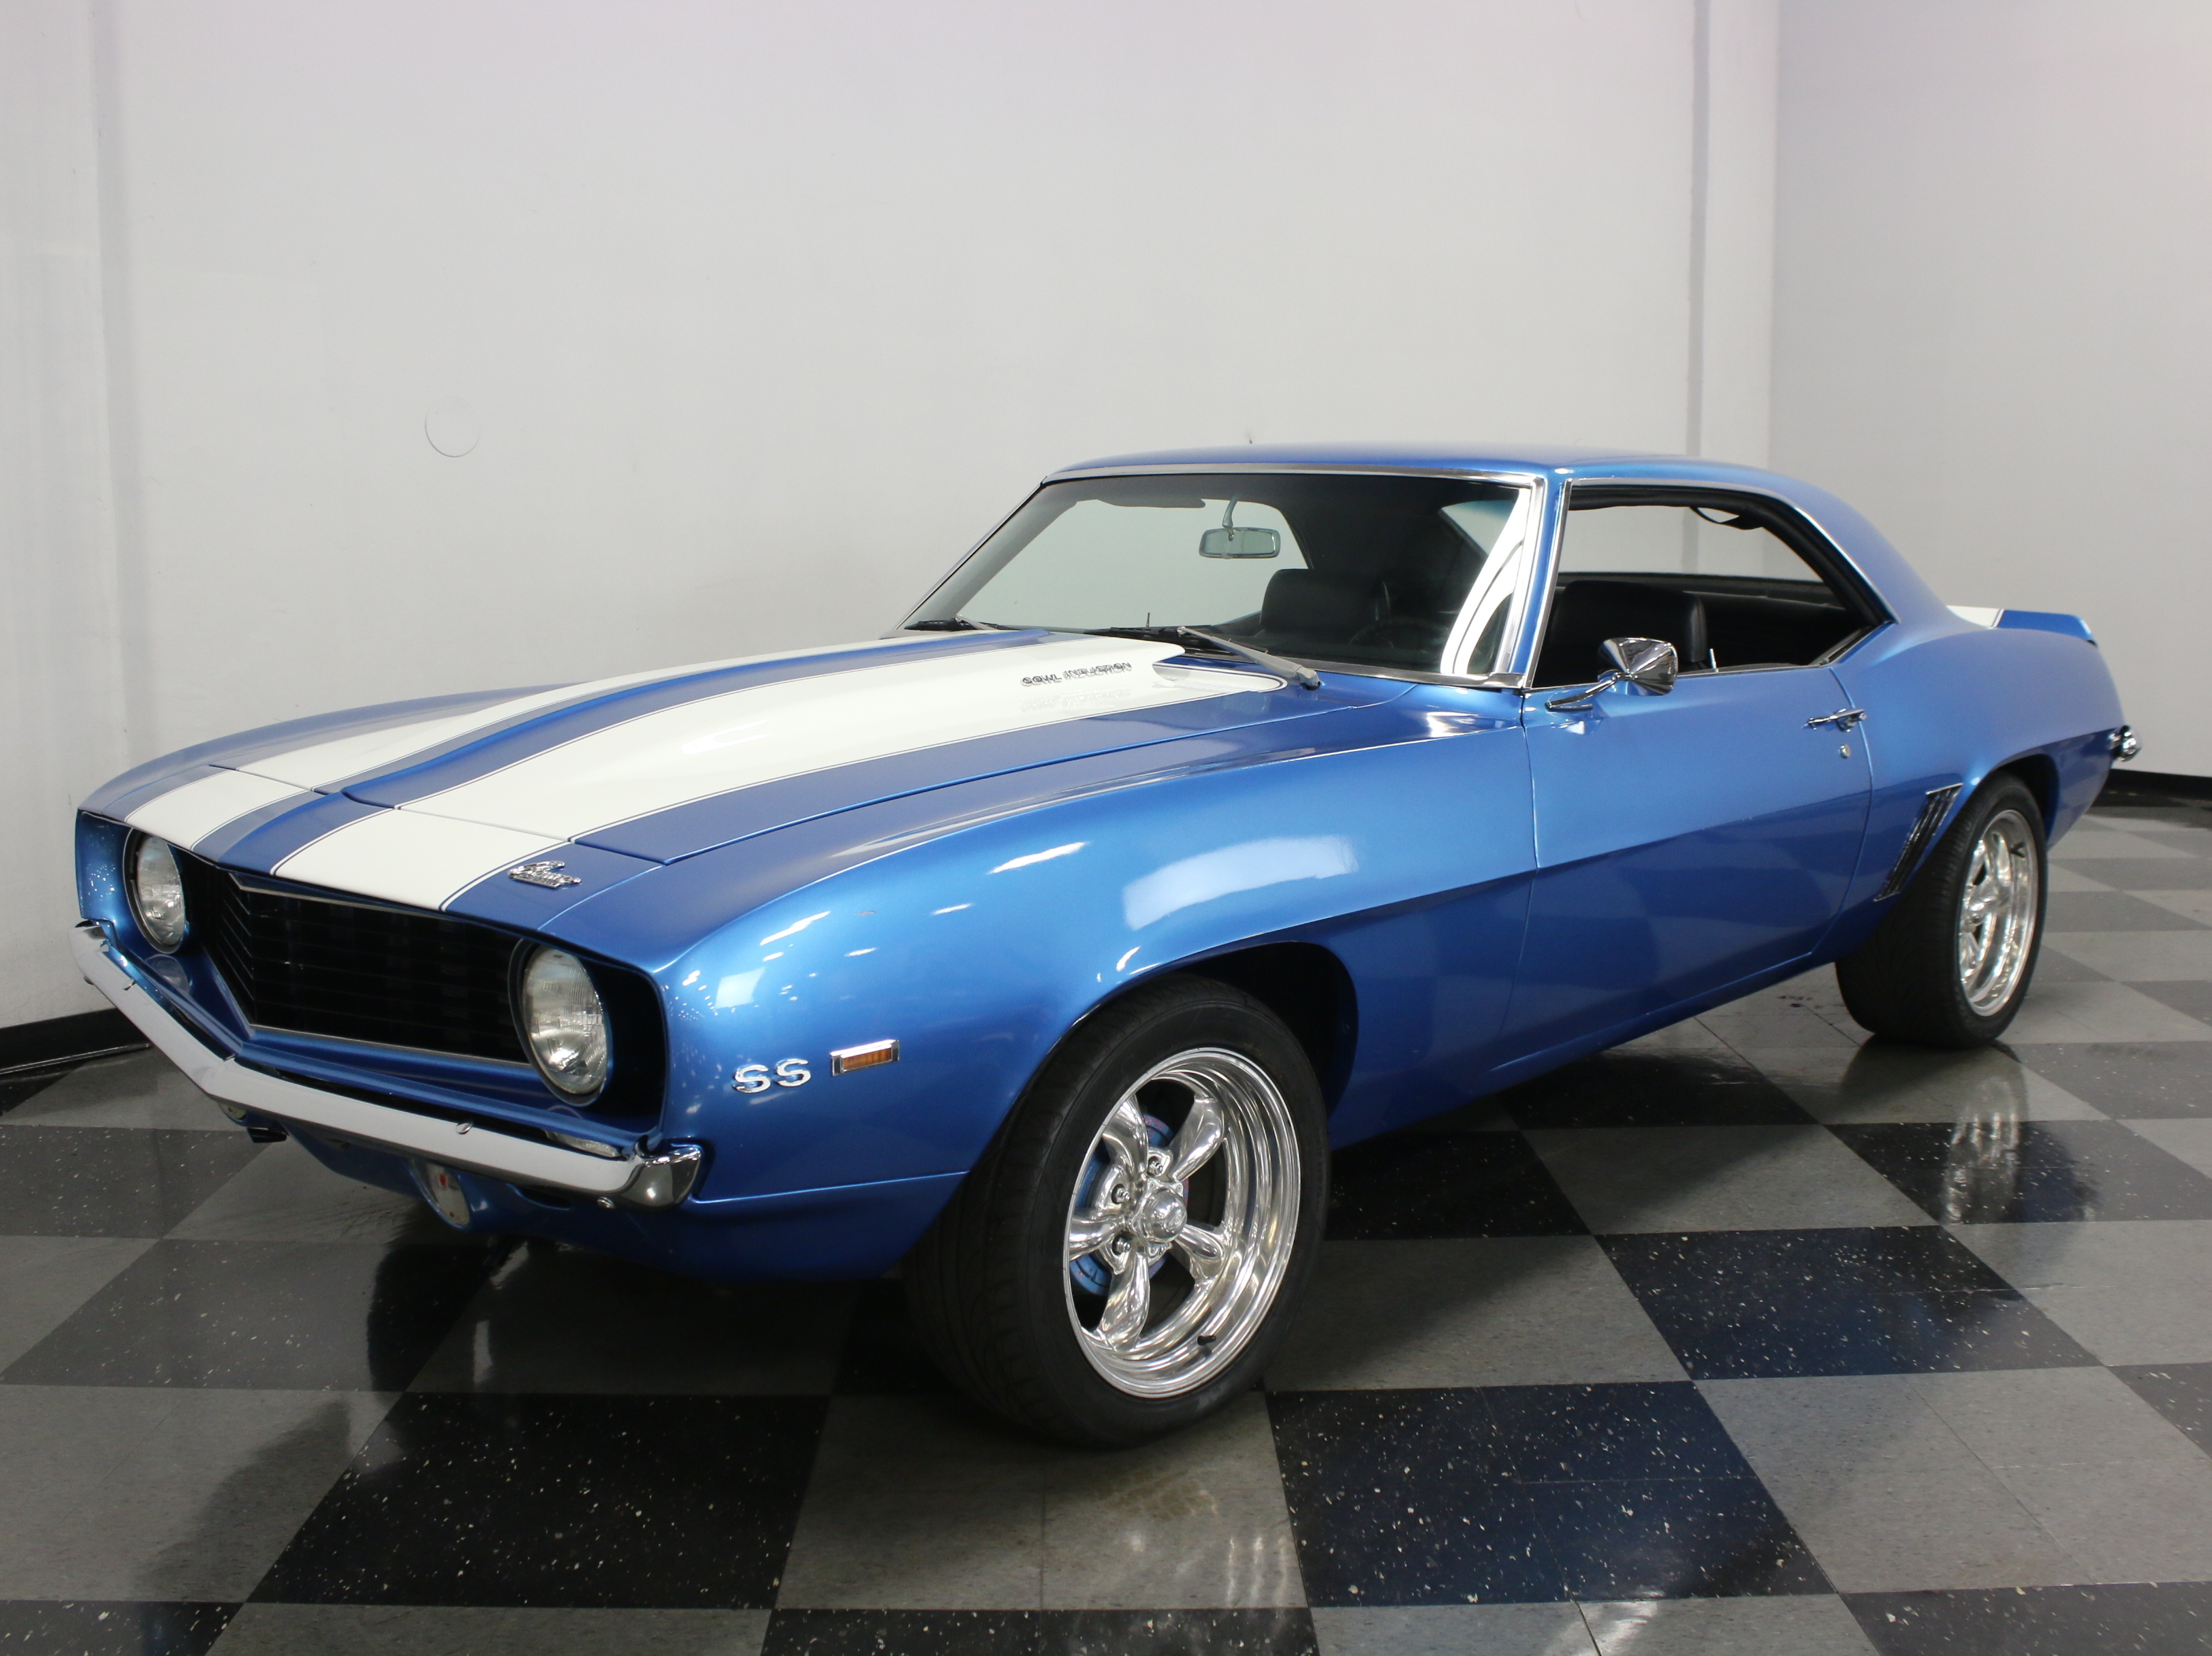 1969 Chevrolet Camaro Streetside Classics The Nation S Trusted Classic Car Consignment Dealer